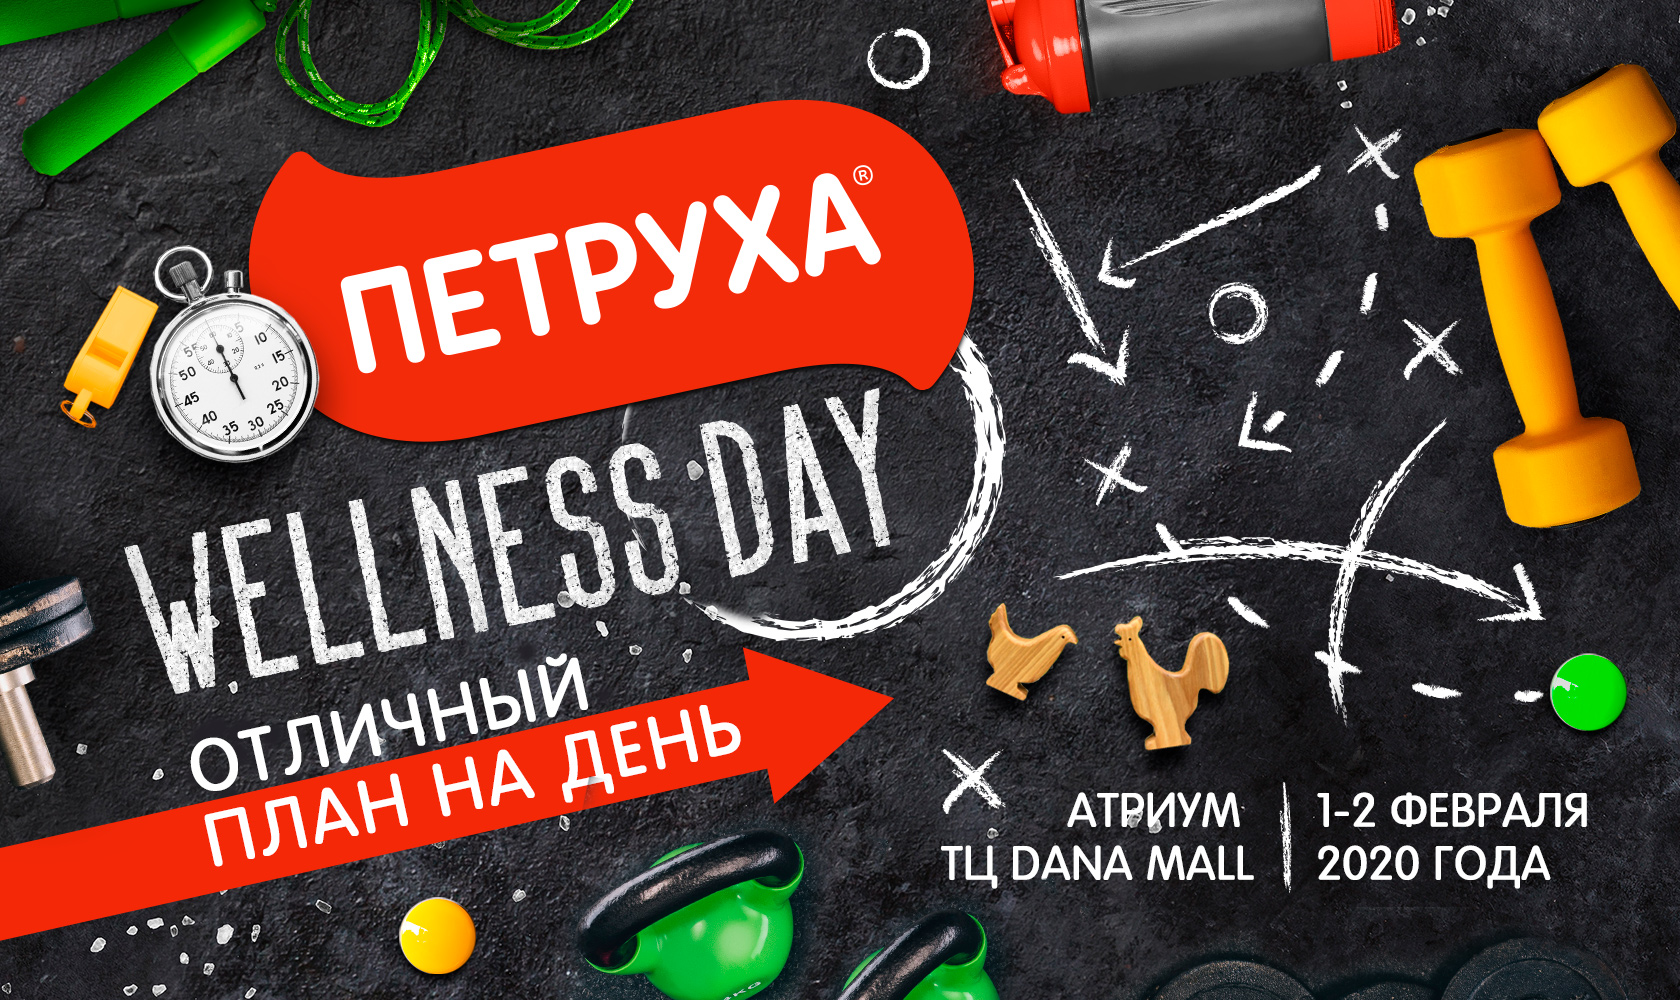 Wellness Day в Минске!